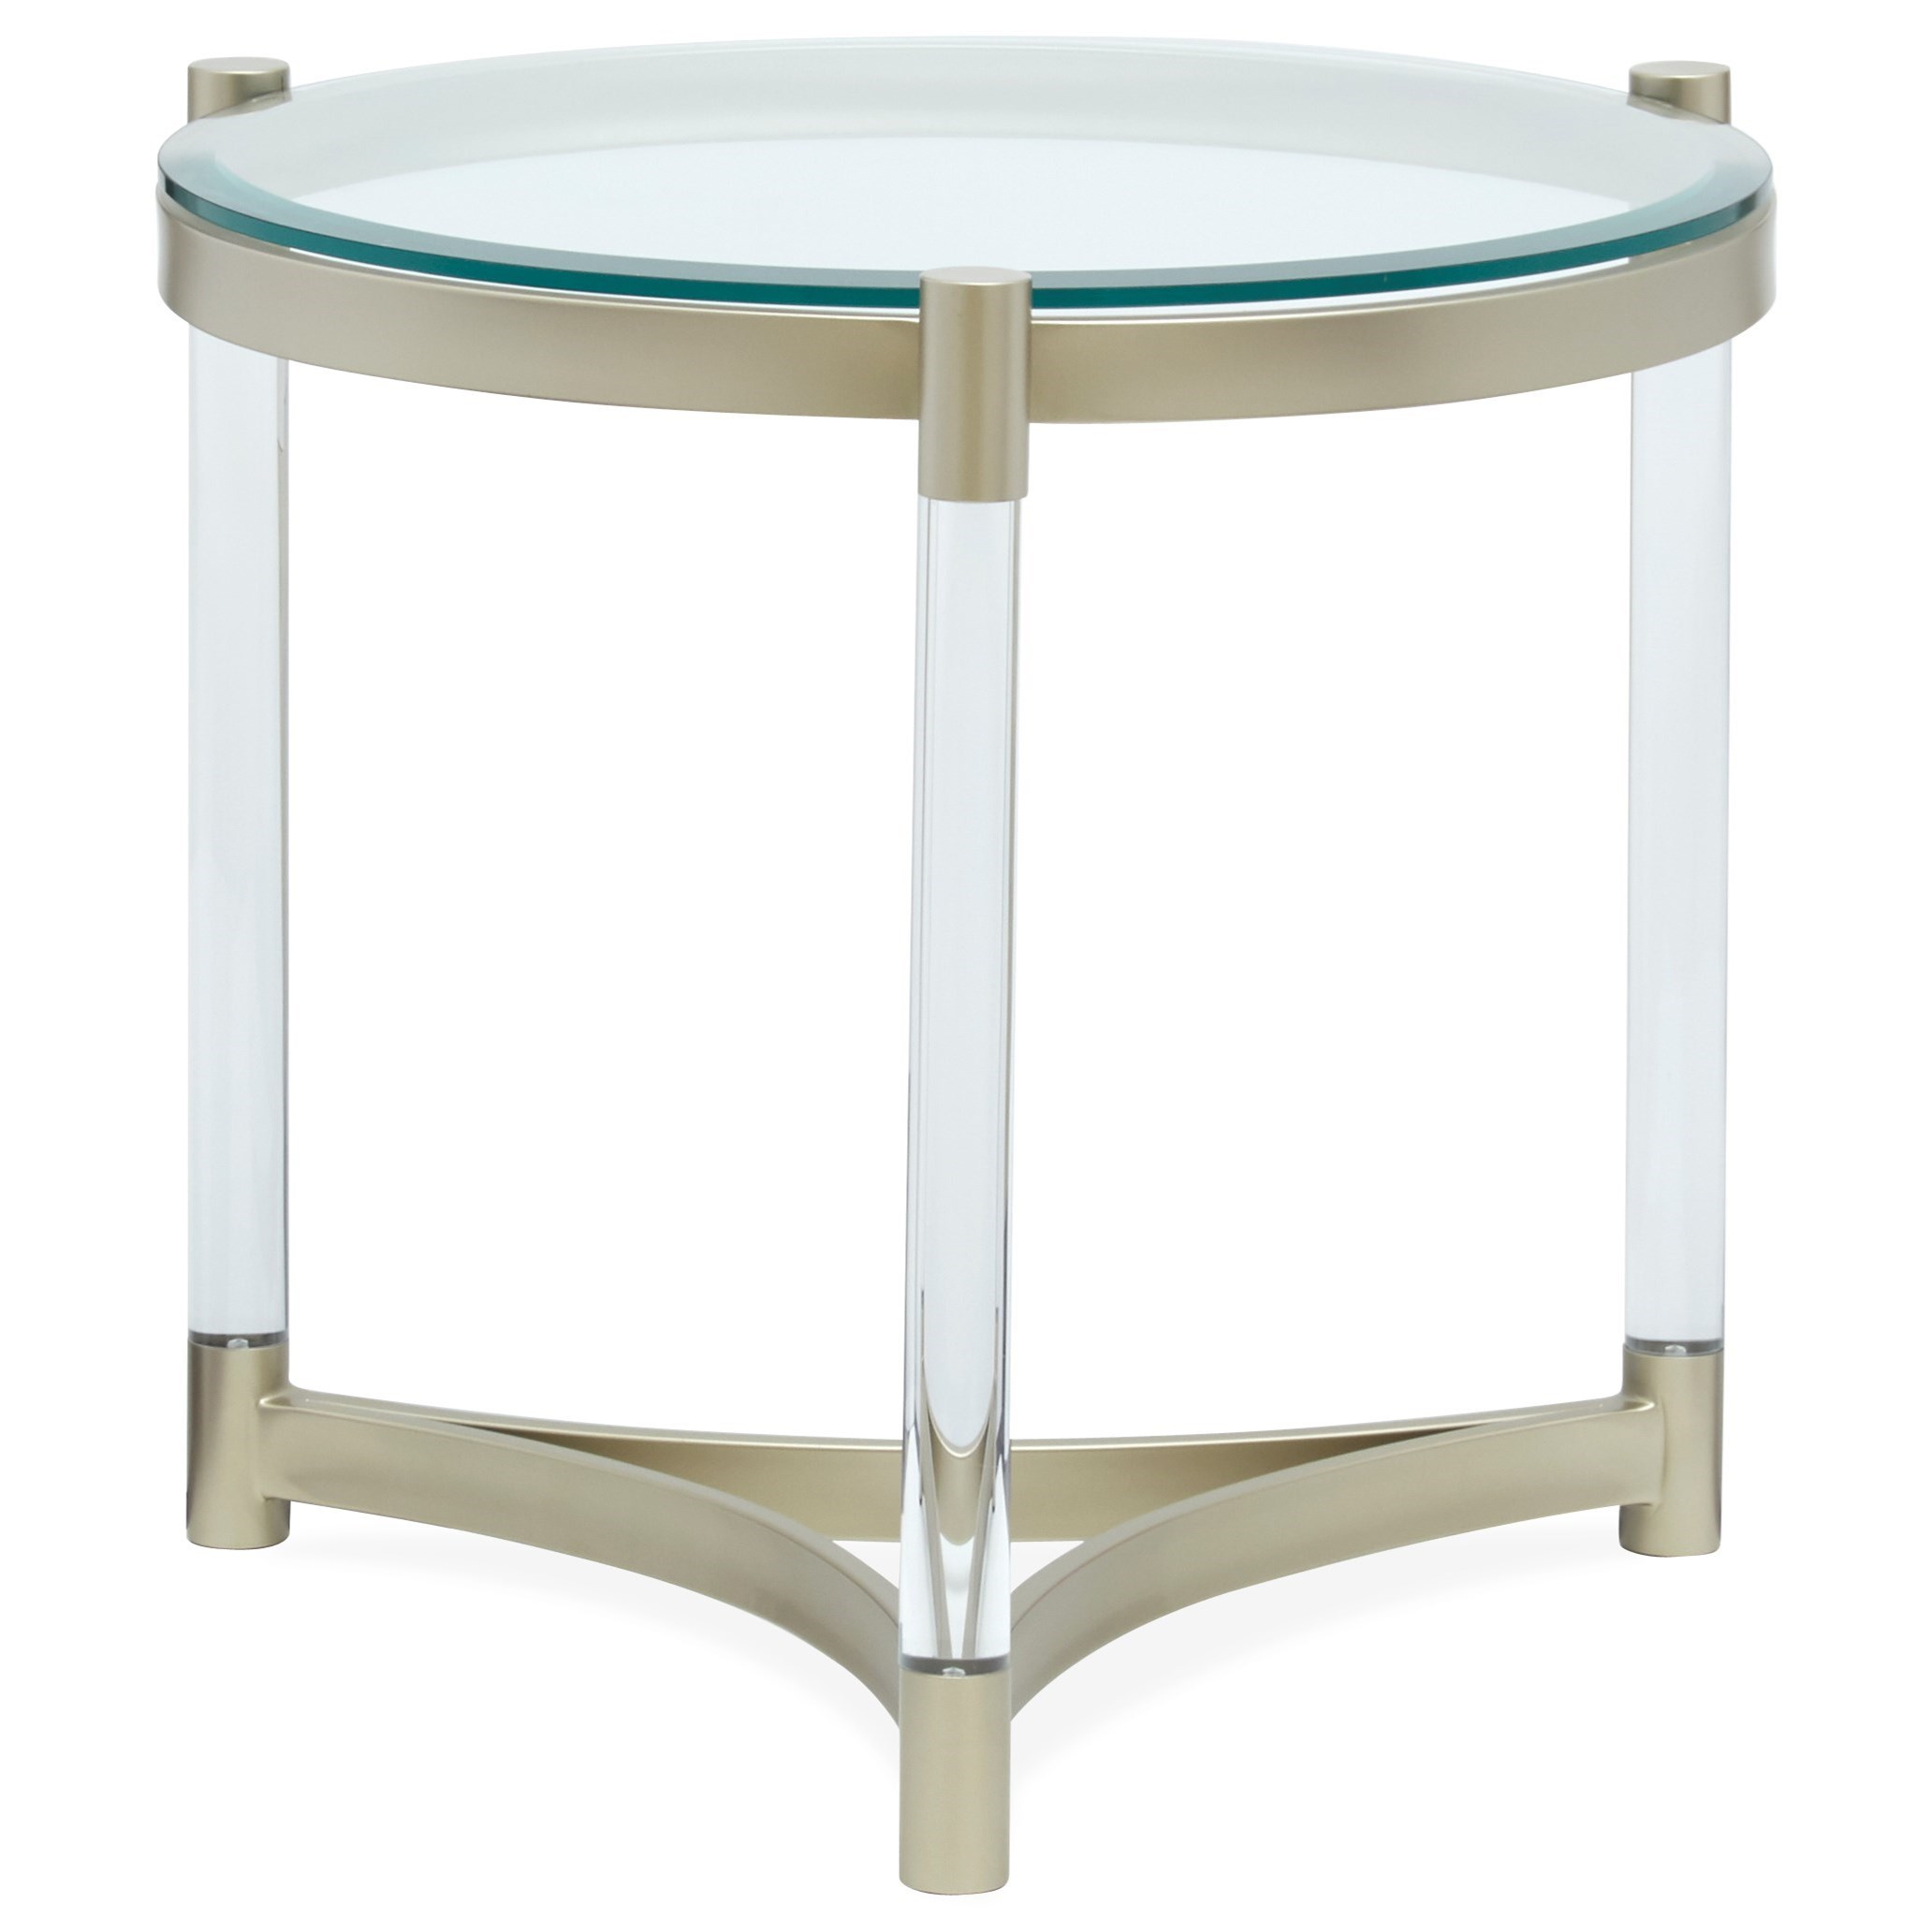 Sonya Sonya End Table by Magnussen Home at Morris Home